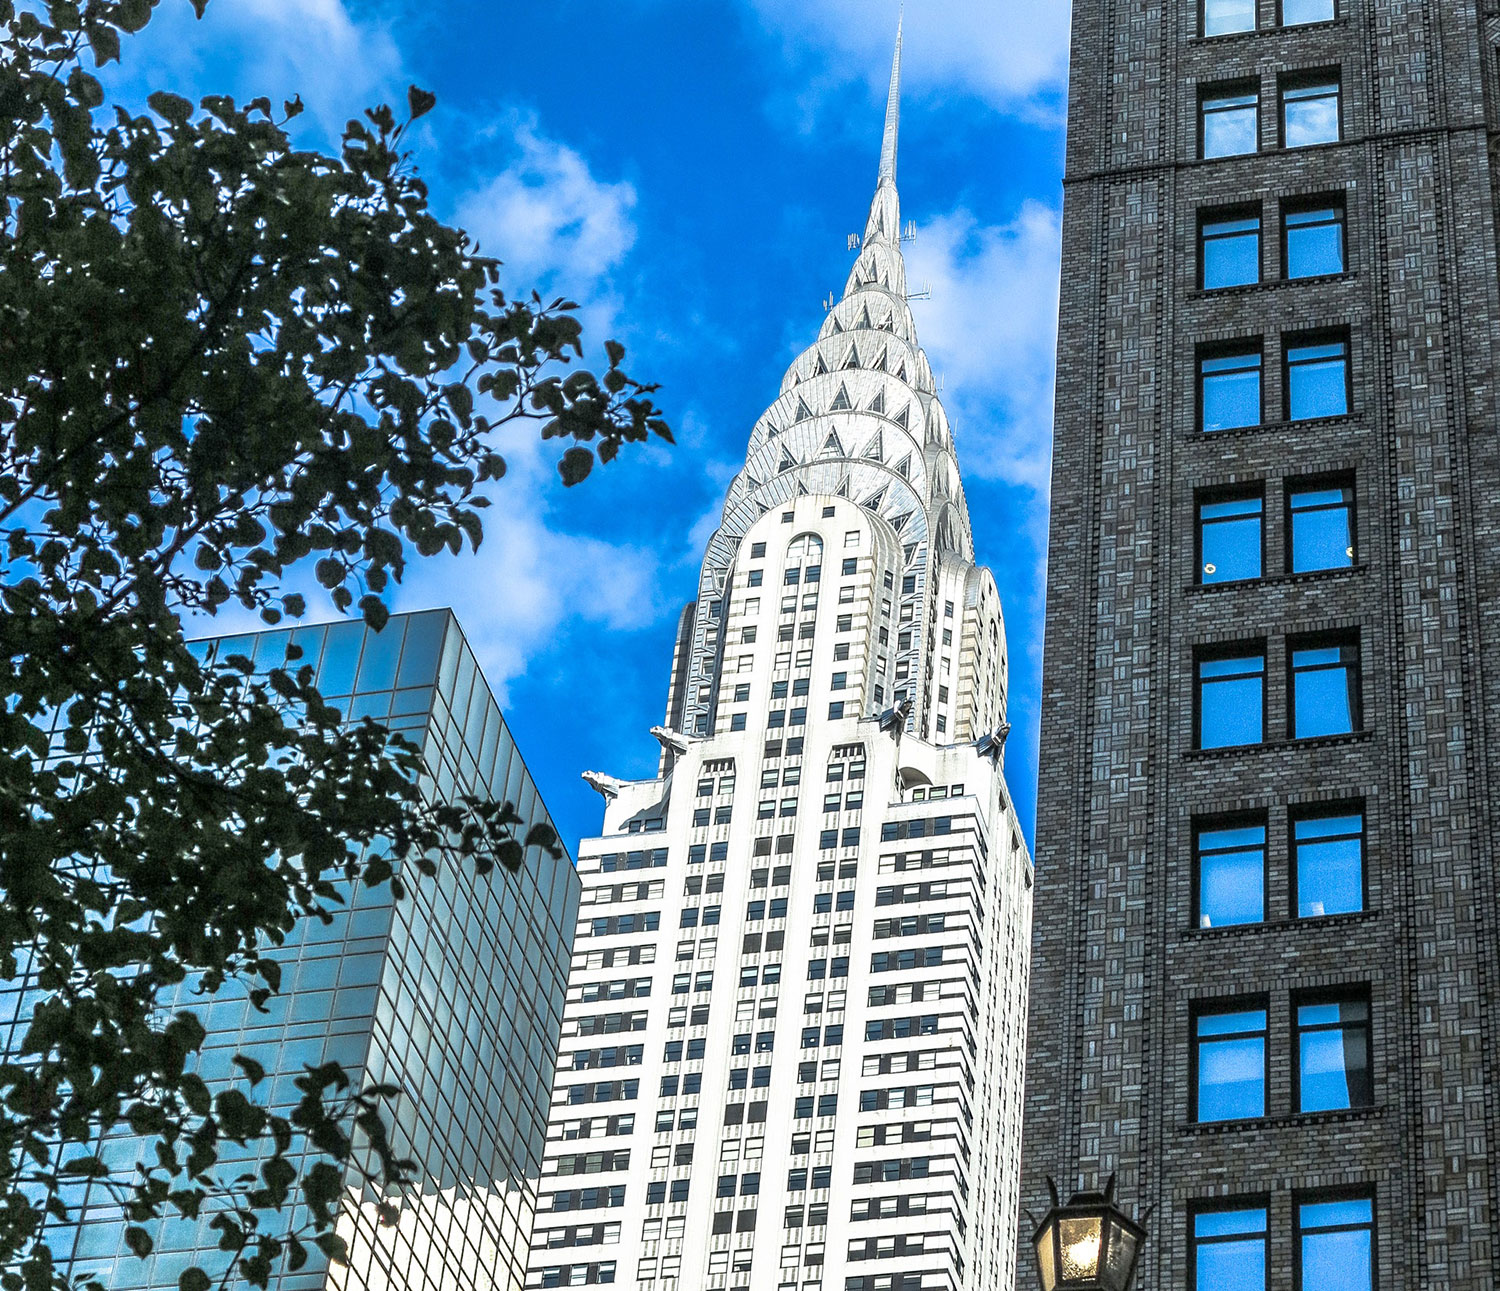 the Chrysler Building was the World's Tallest Building for less than a year